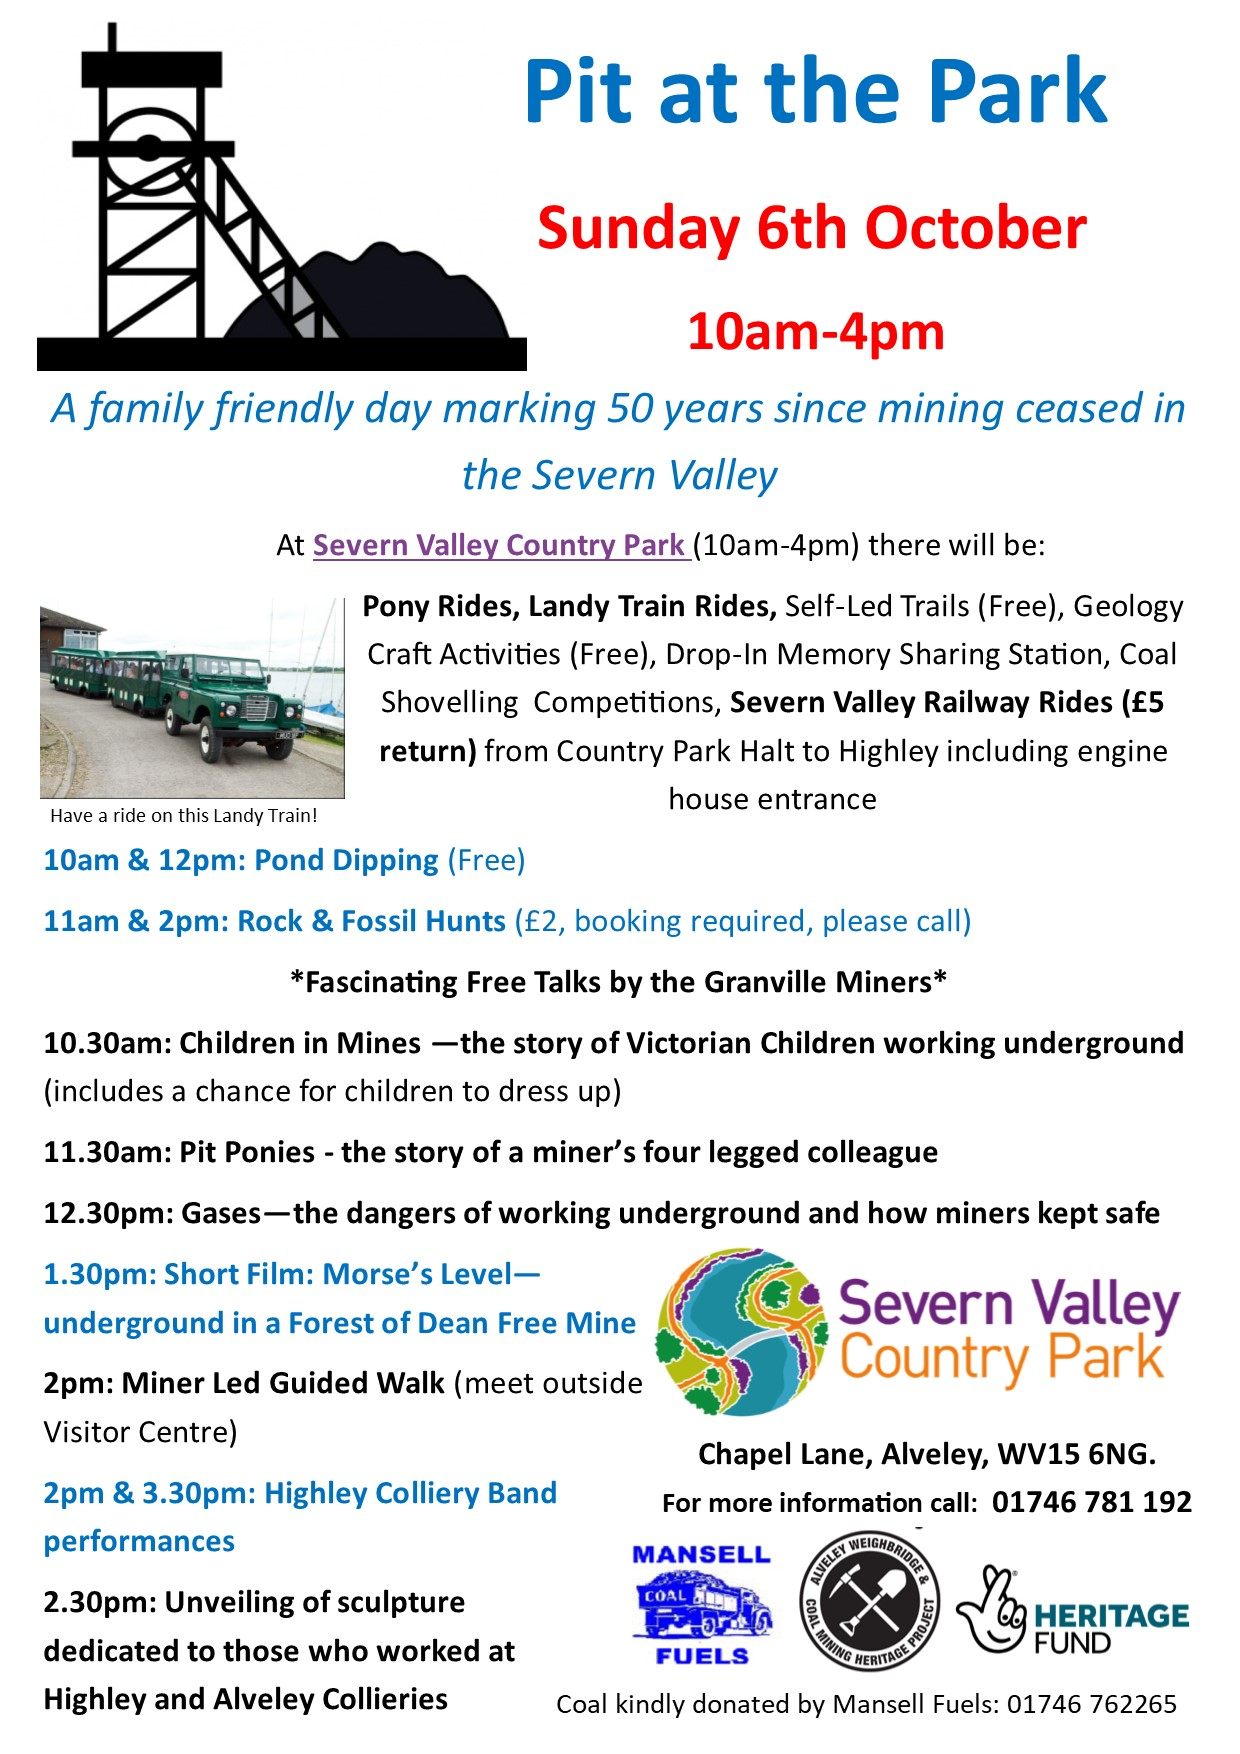 Pit in the Park poster - Alveley Mine closure 50th anniversary